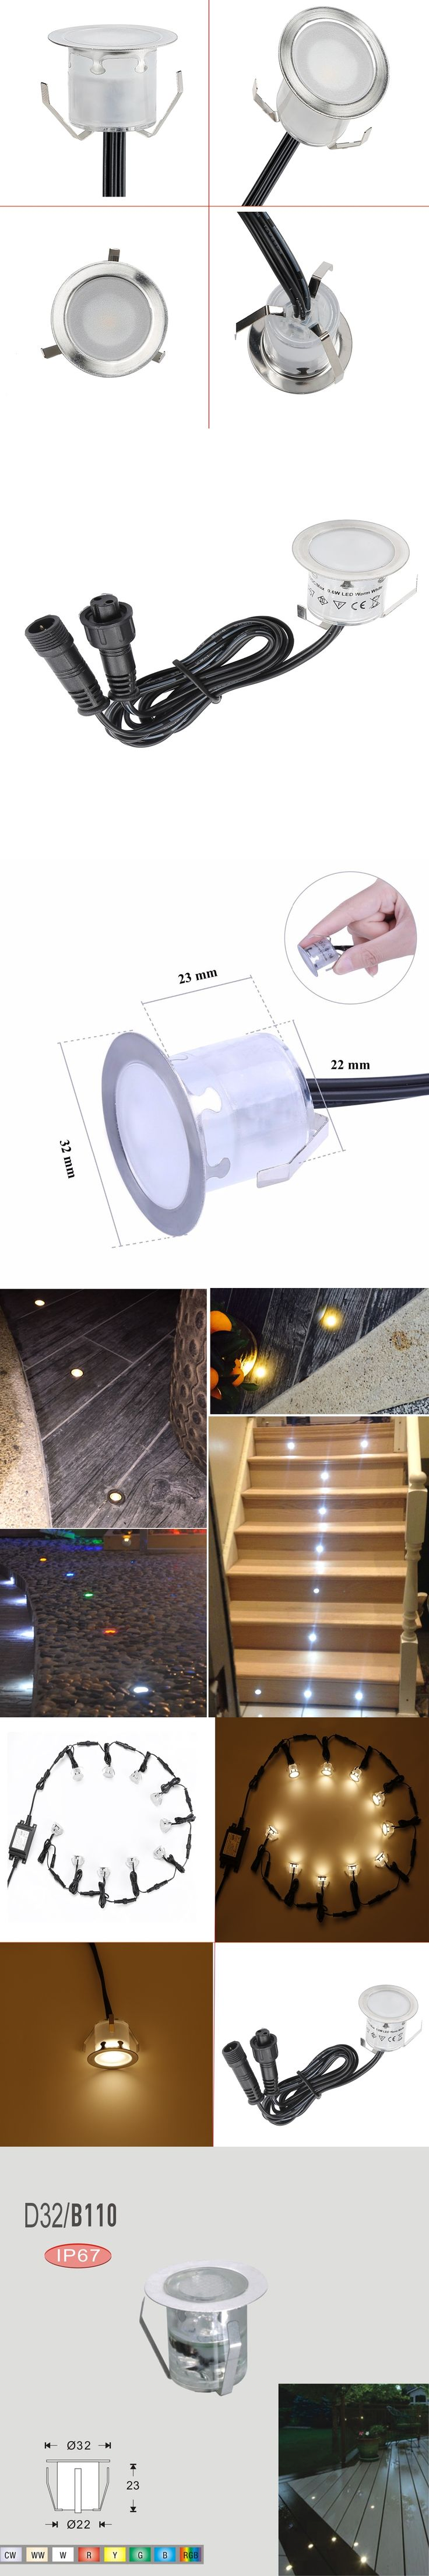 Best 25 Led deck lights ideas on Pinterest